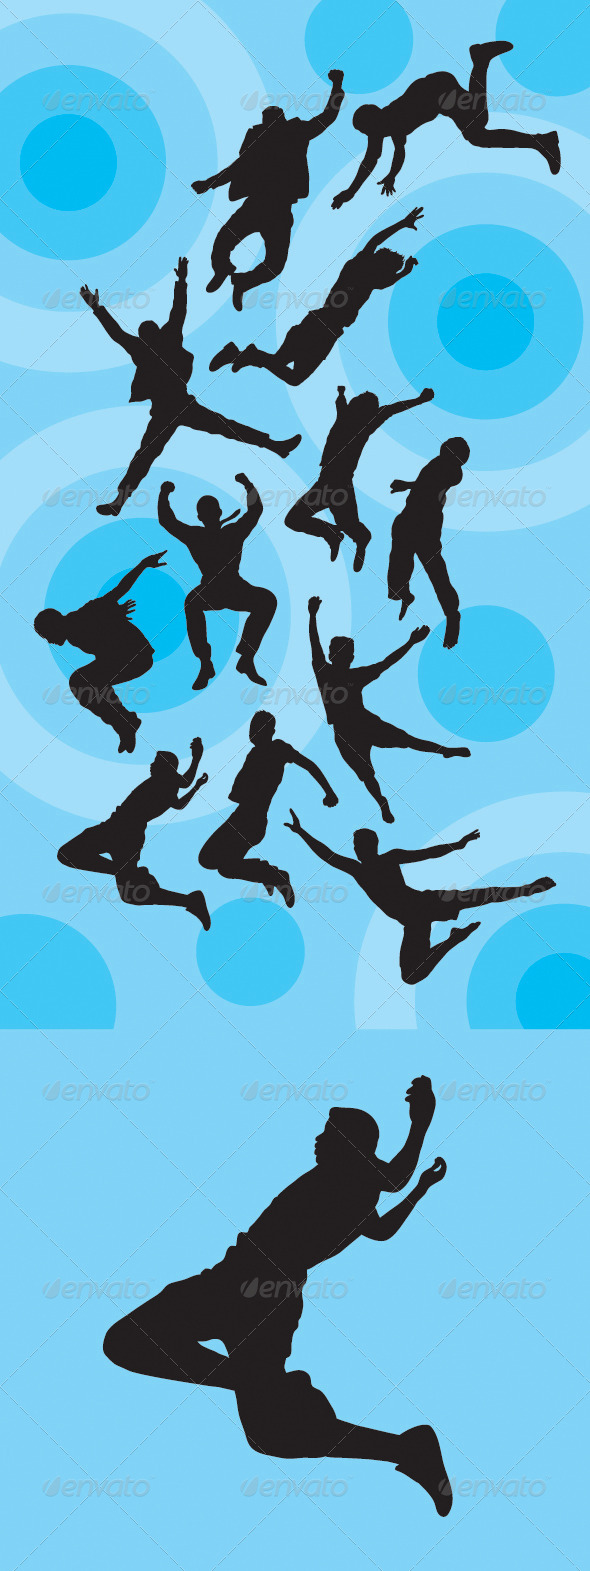 Man Jumping Silhouettes - People Characters